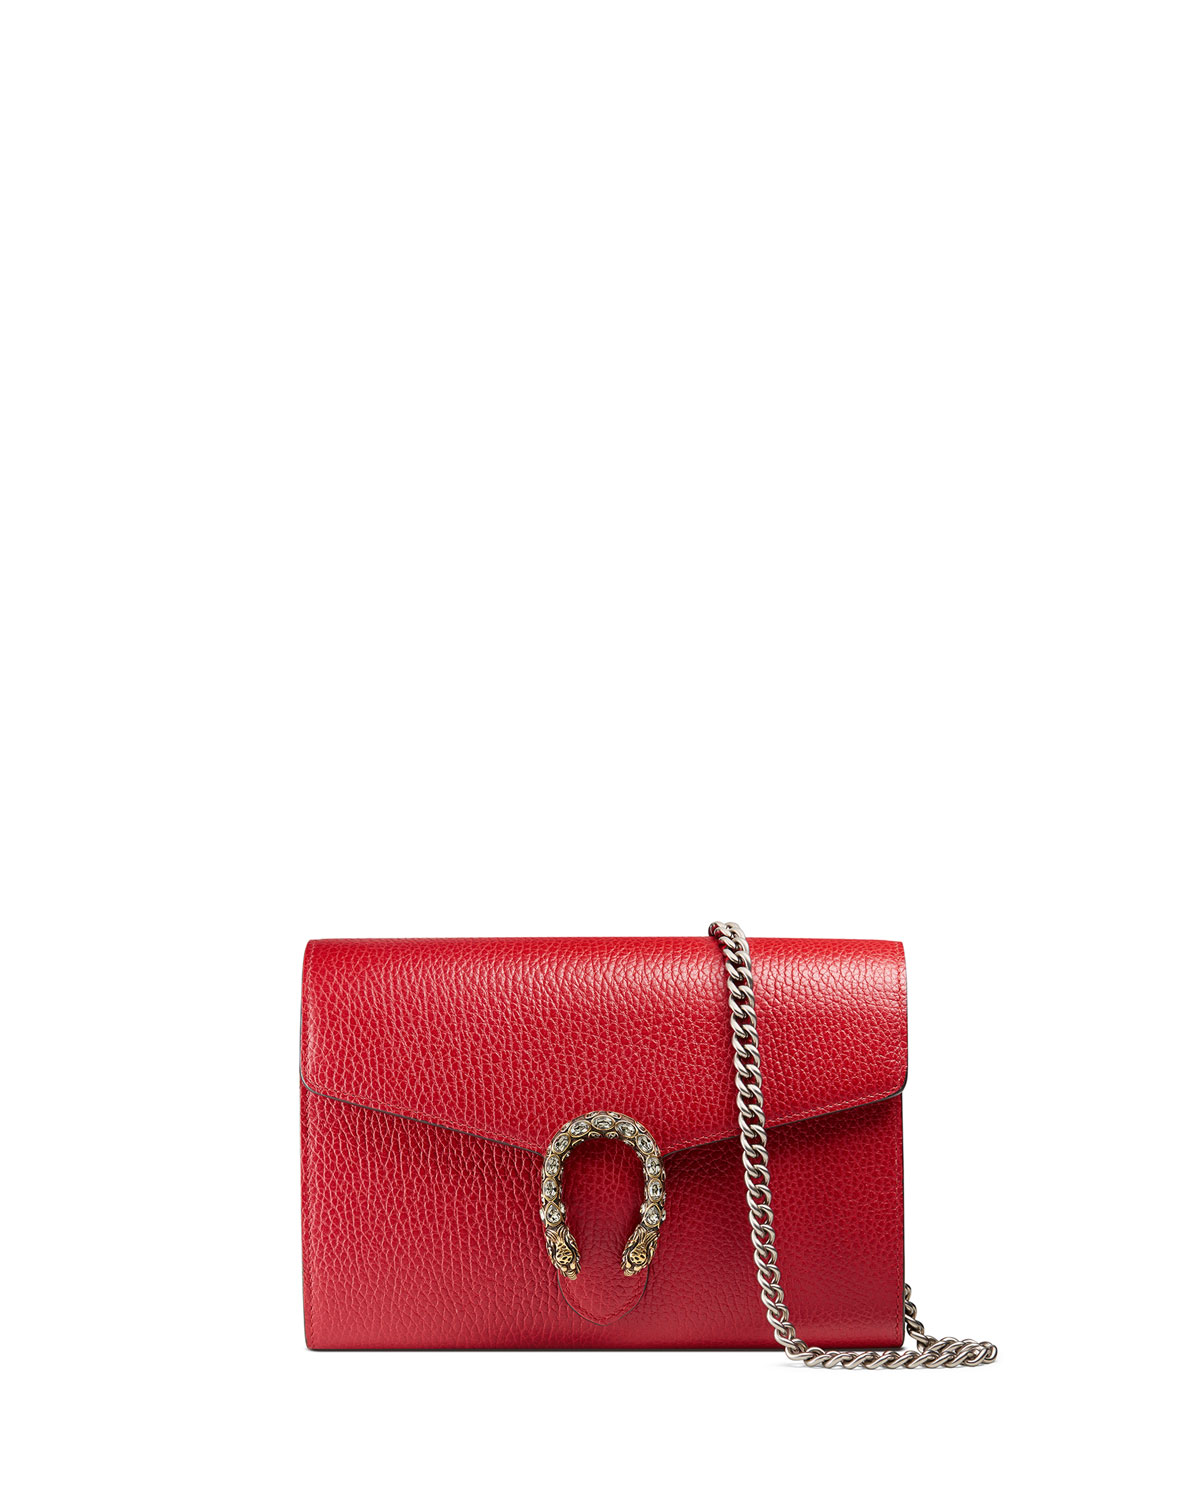 17a0f1180bf8 Gucci Dionysus Leather Mini Chain Wallet, Red | Neiman Marcus